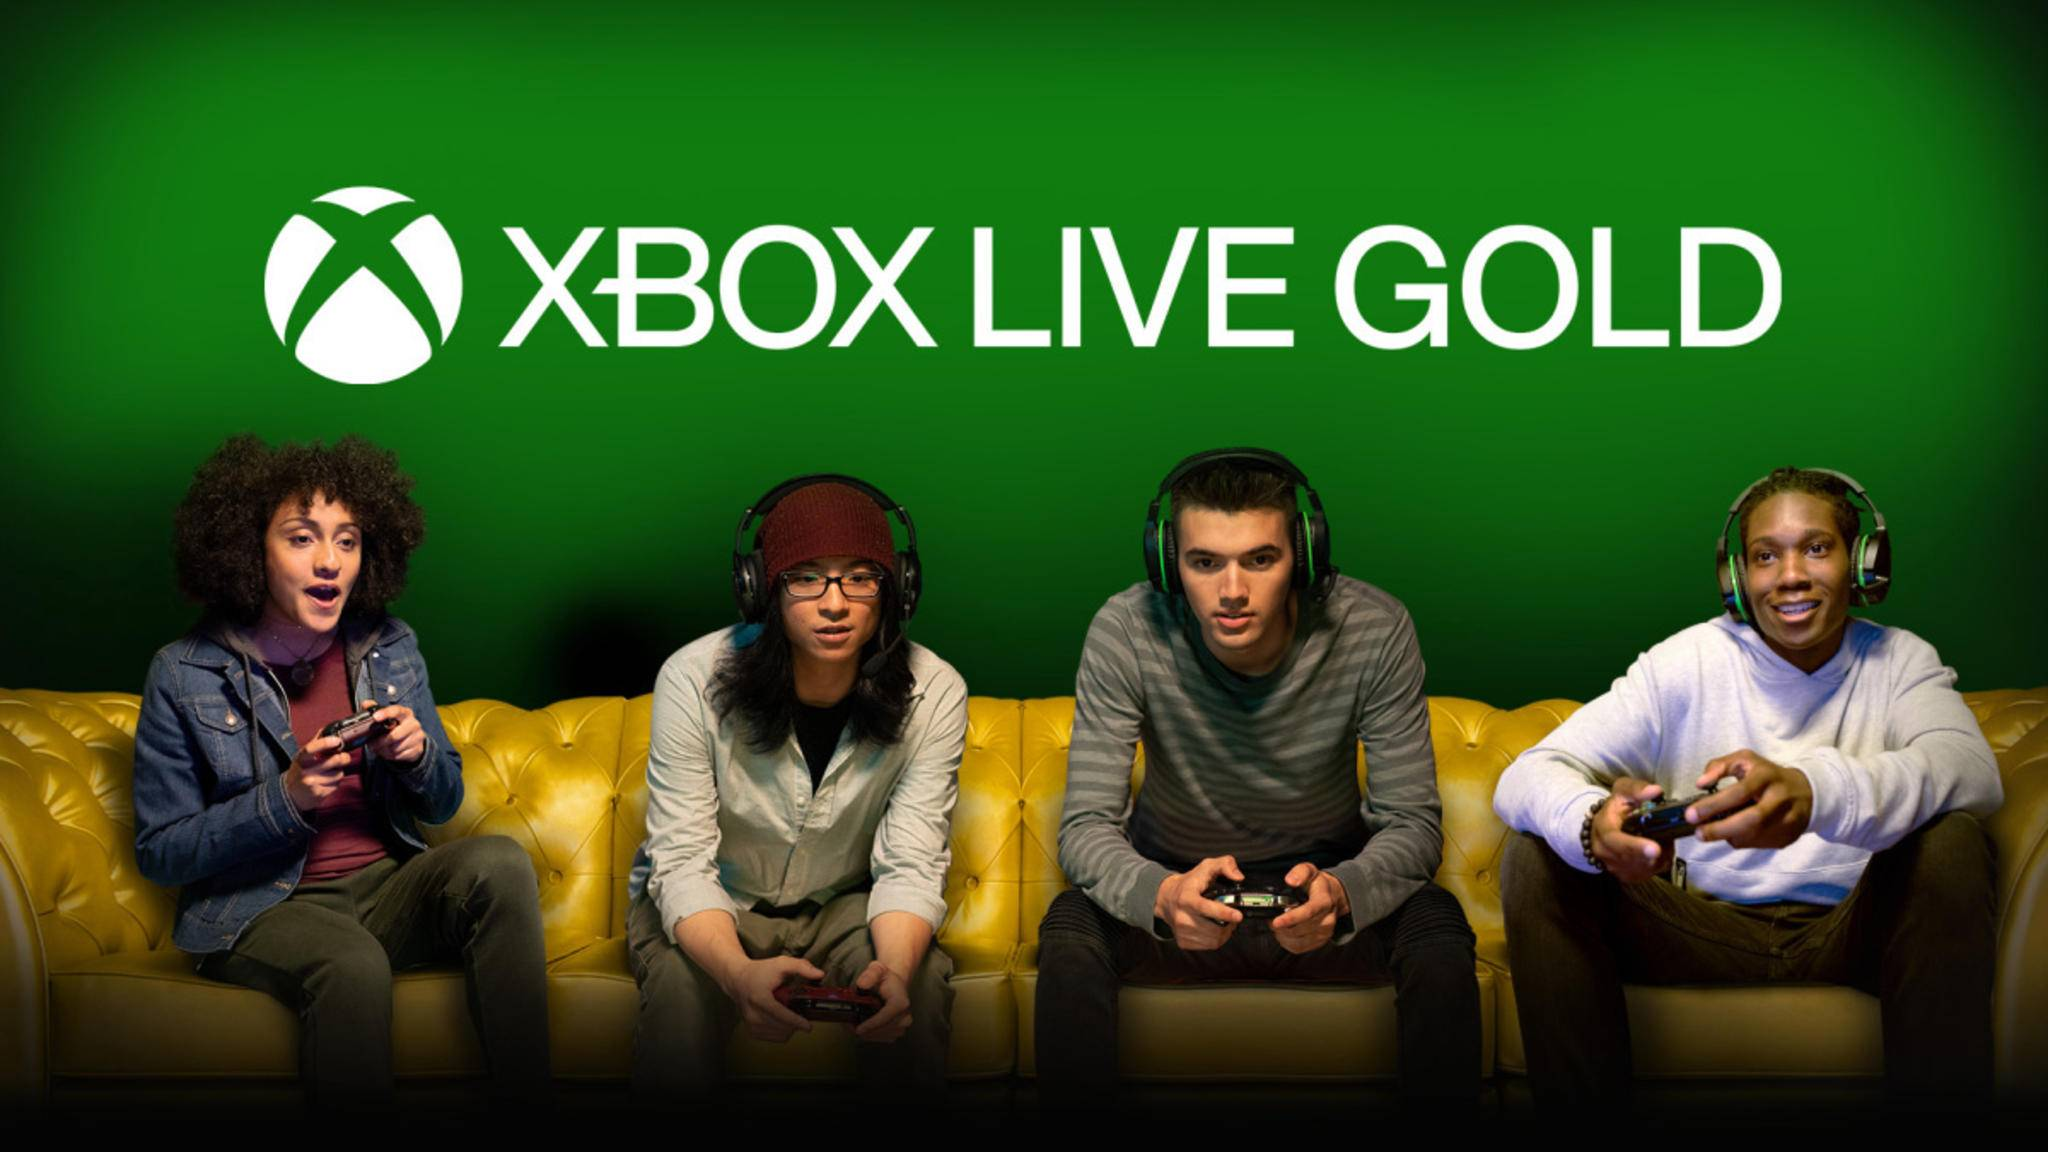 Xbox-Live-Gold-gamer-couch